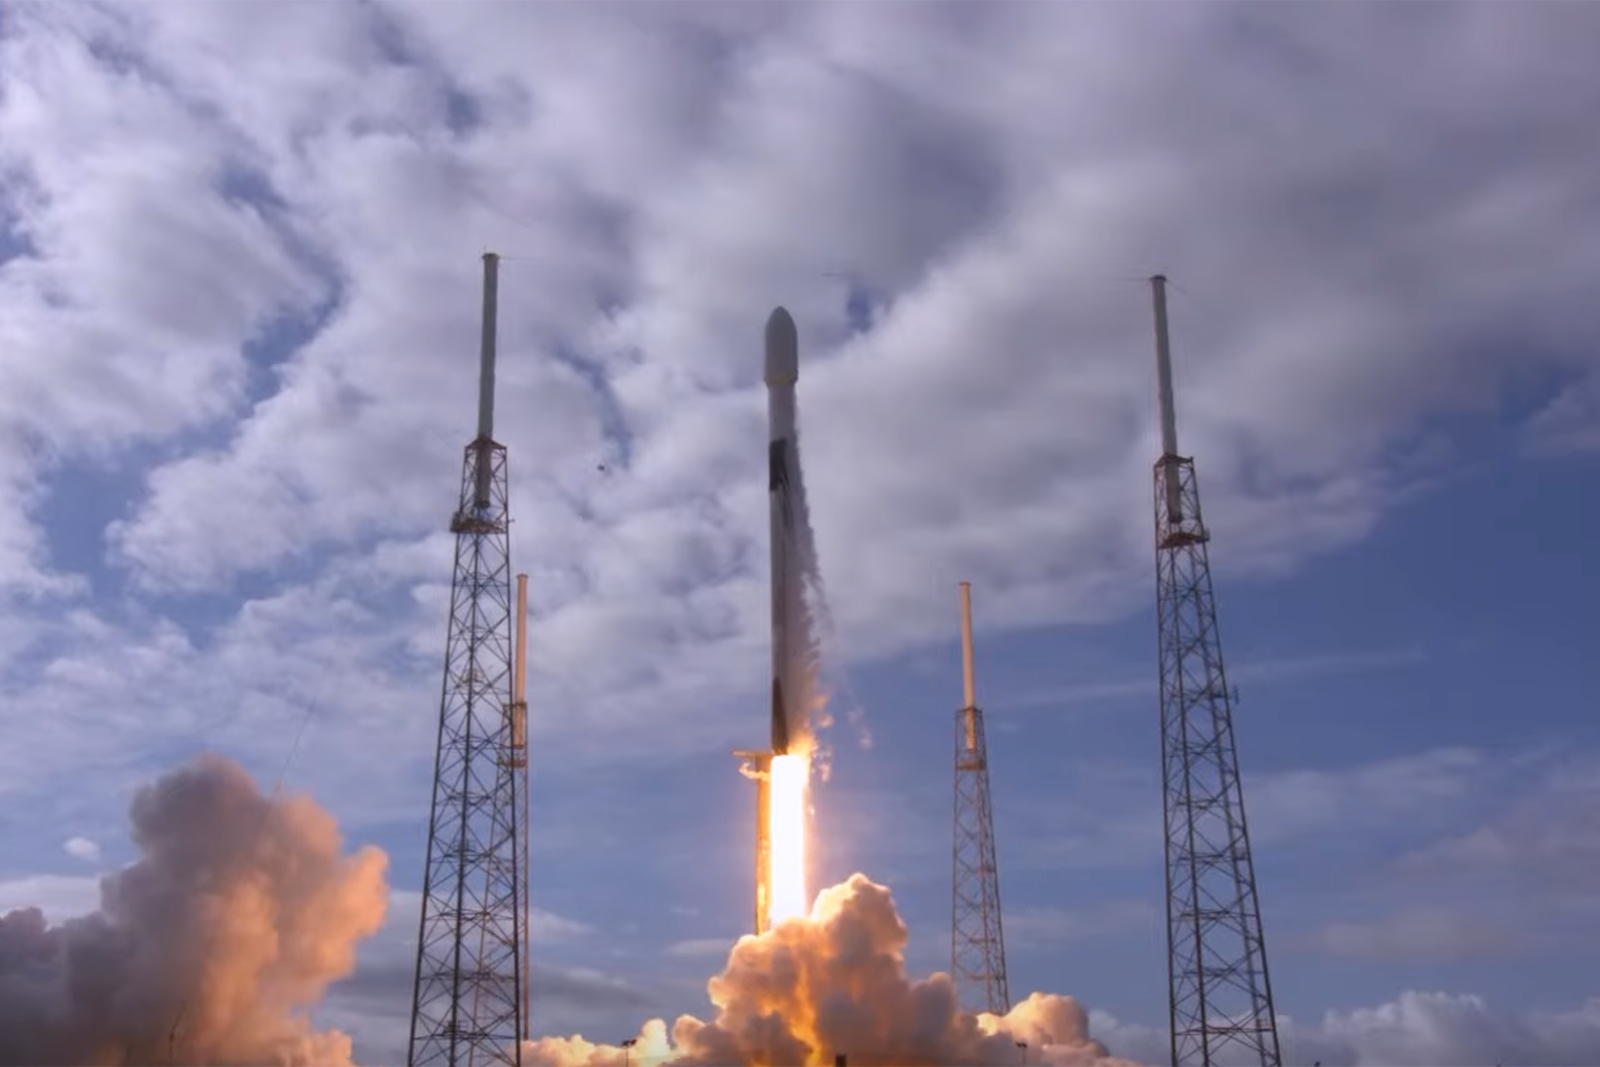 SpaceX launches a record 143 satellites into orbit – Yahoo News Australia